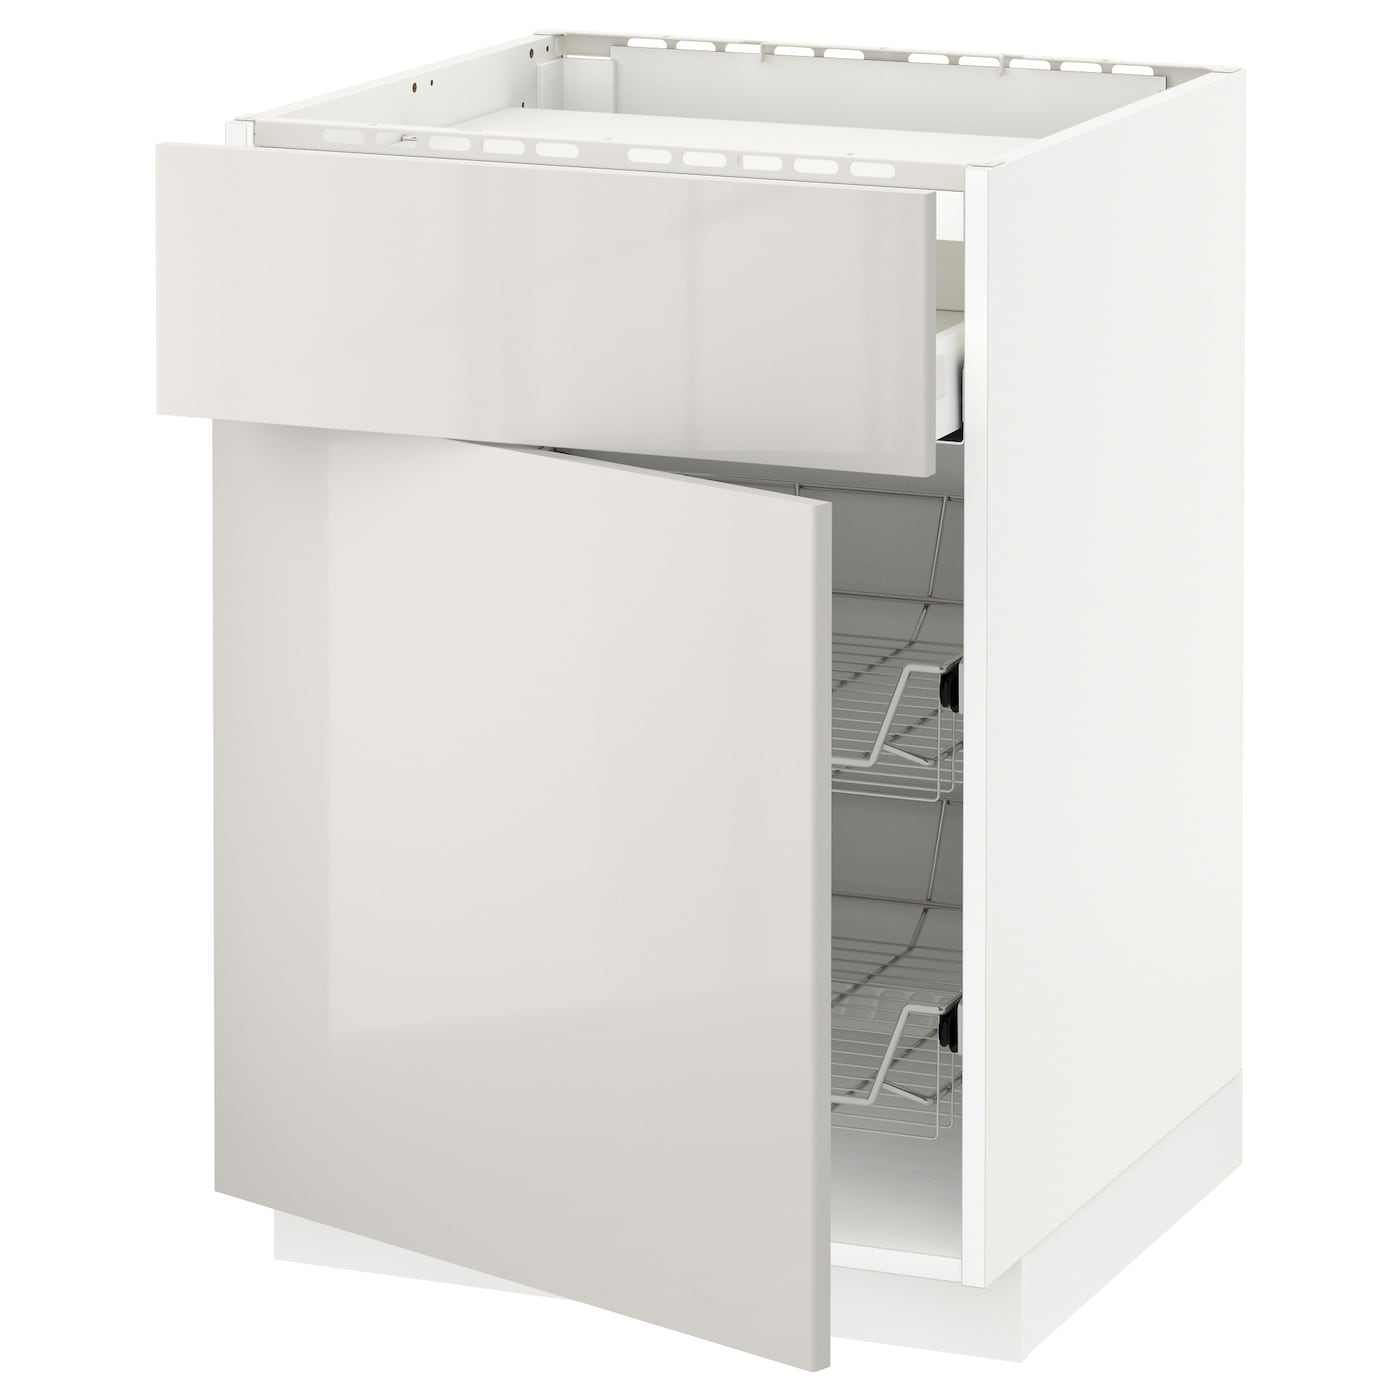 IKEA METOD/MAXIMERA base cab f hob/drawer/2 wire bskts Smooth-running drawers with stop.